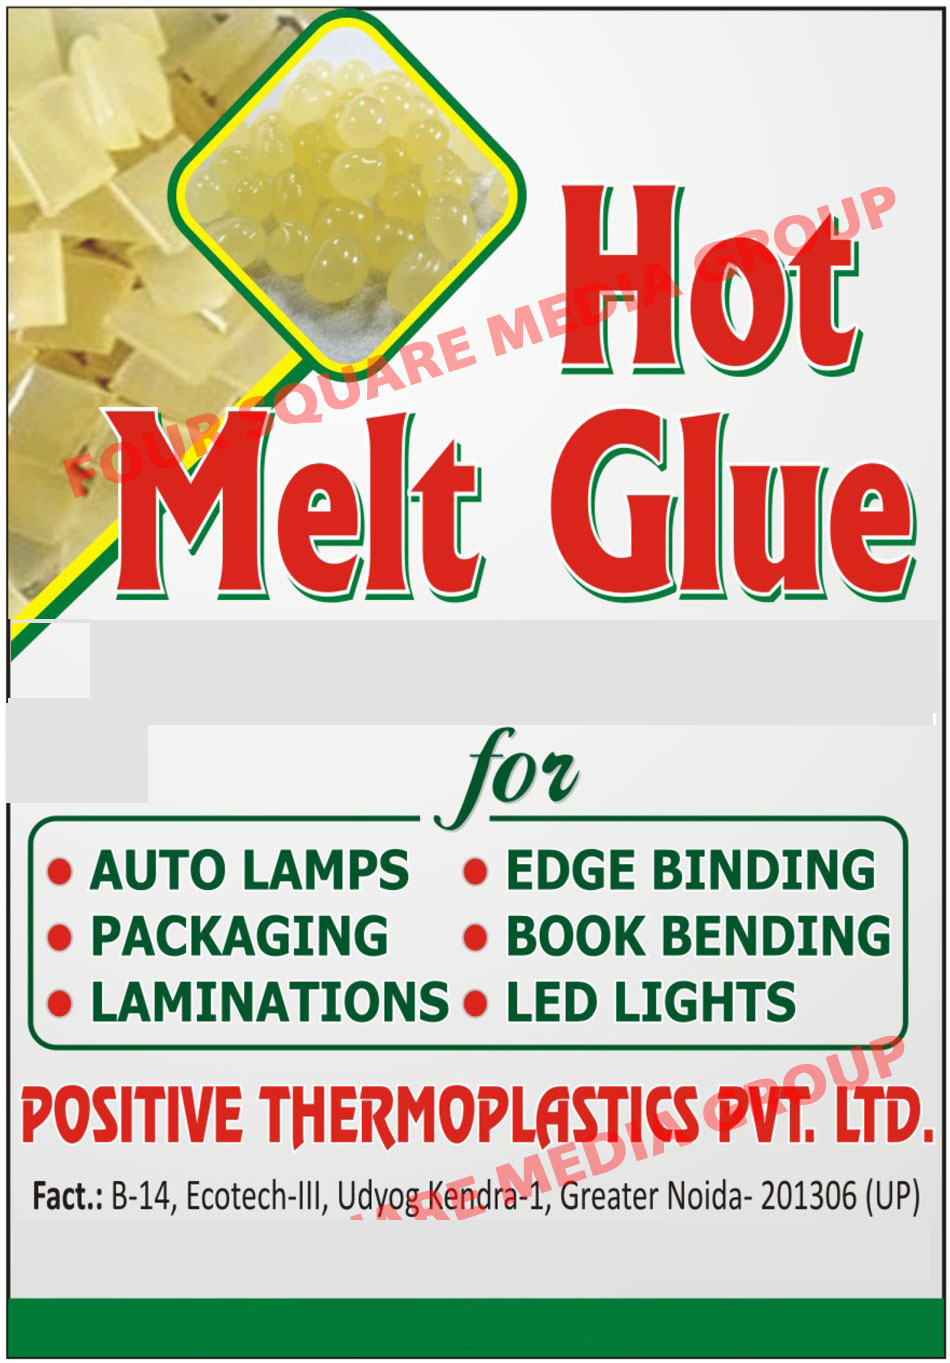 Packaging Hot Melt Glues, Auto Lamp Hot Melt Glues, Led Light Hot Melt Glues, EDGE Binding Hot Melt Glues, Lamination Hot Melt Glues, Book Binding Hot Melt Glues